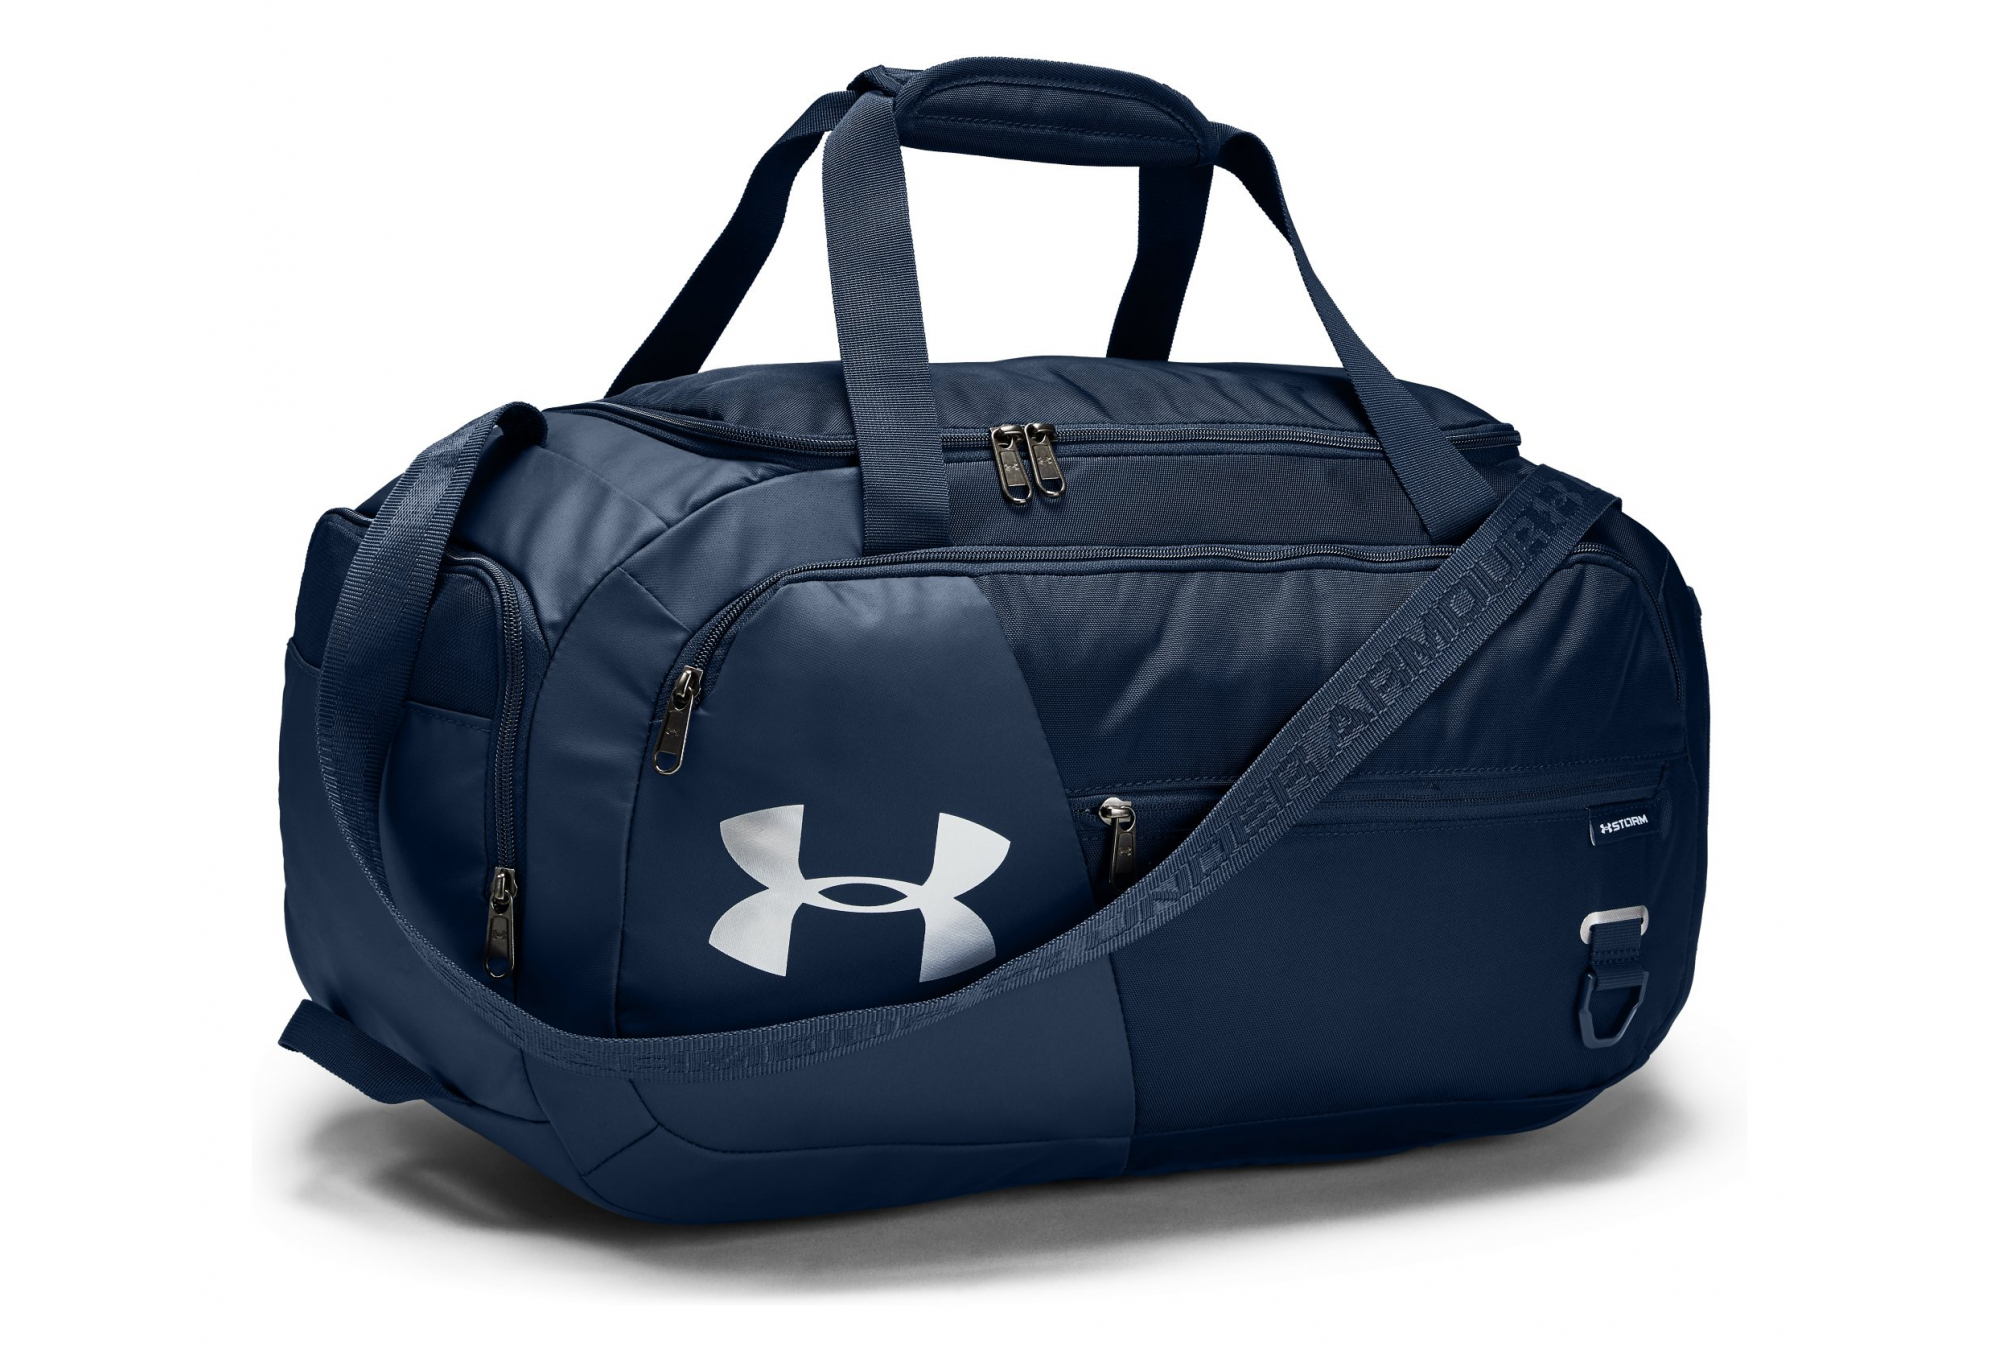 59c8b73a Under Armour Undeniable 4.0 Small Duffle Bag Blue